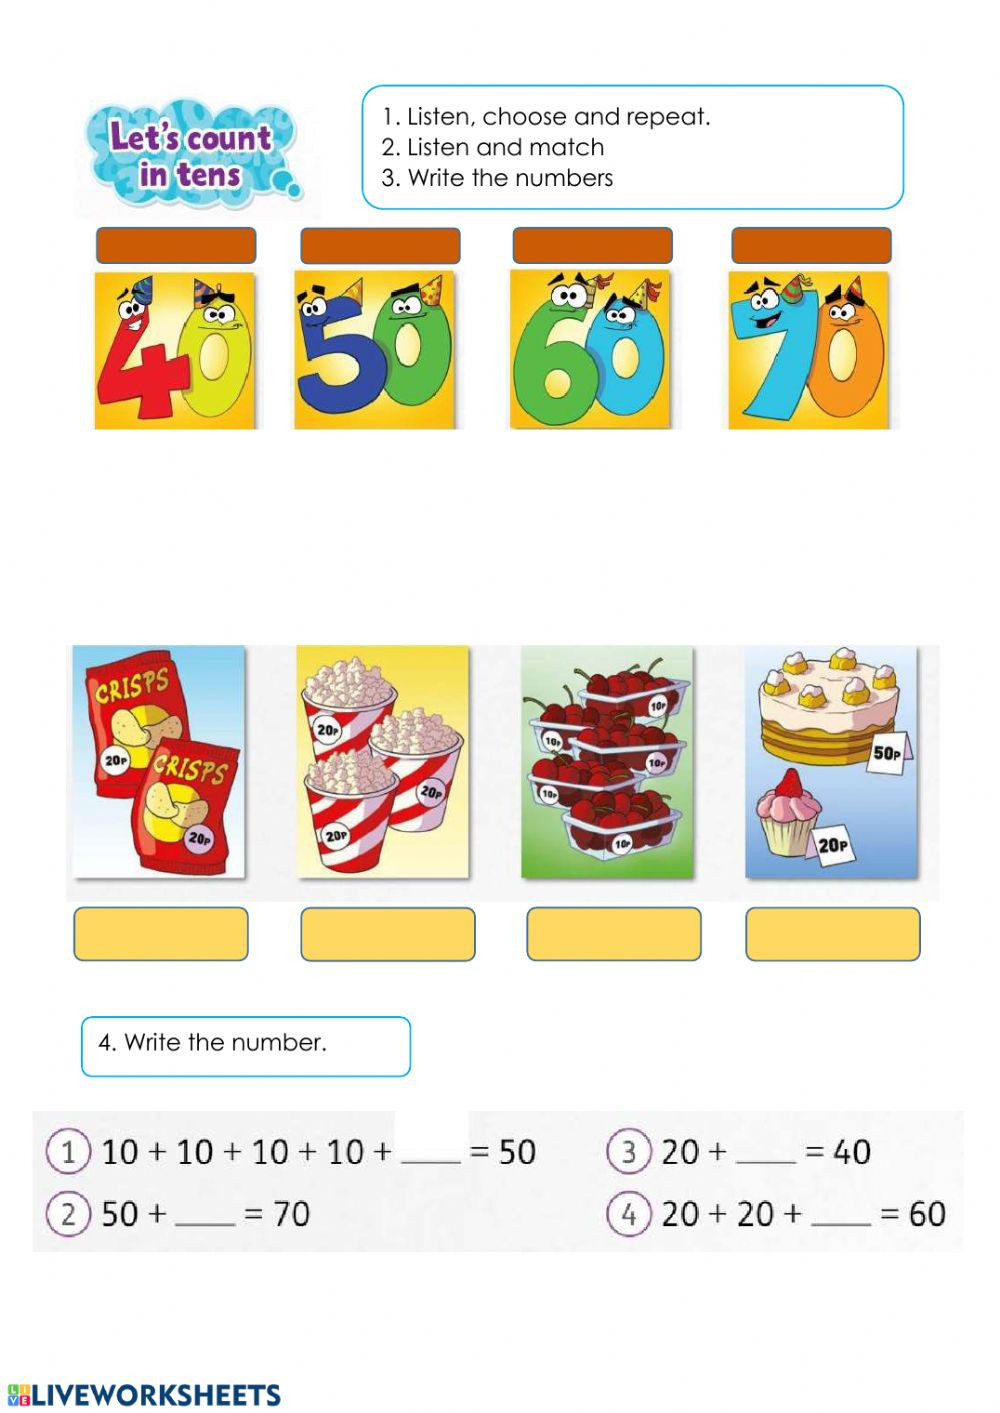 Counting In 10s Worksheet Count In 10s Interactive Worksheet